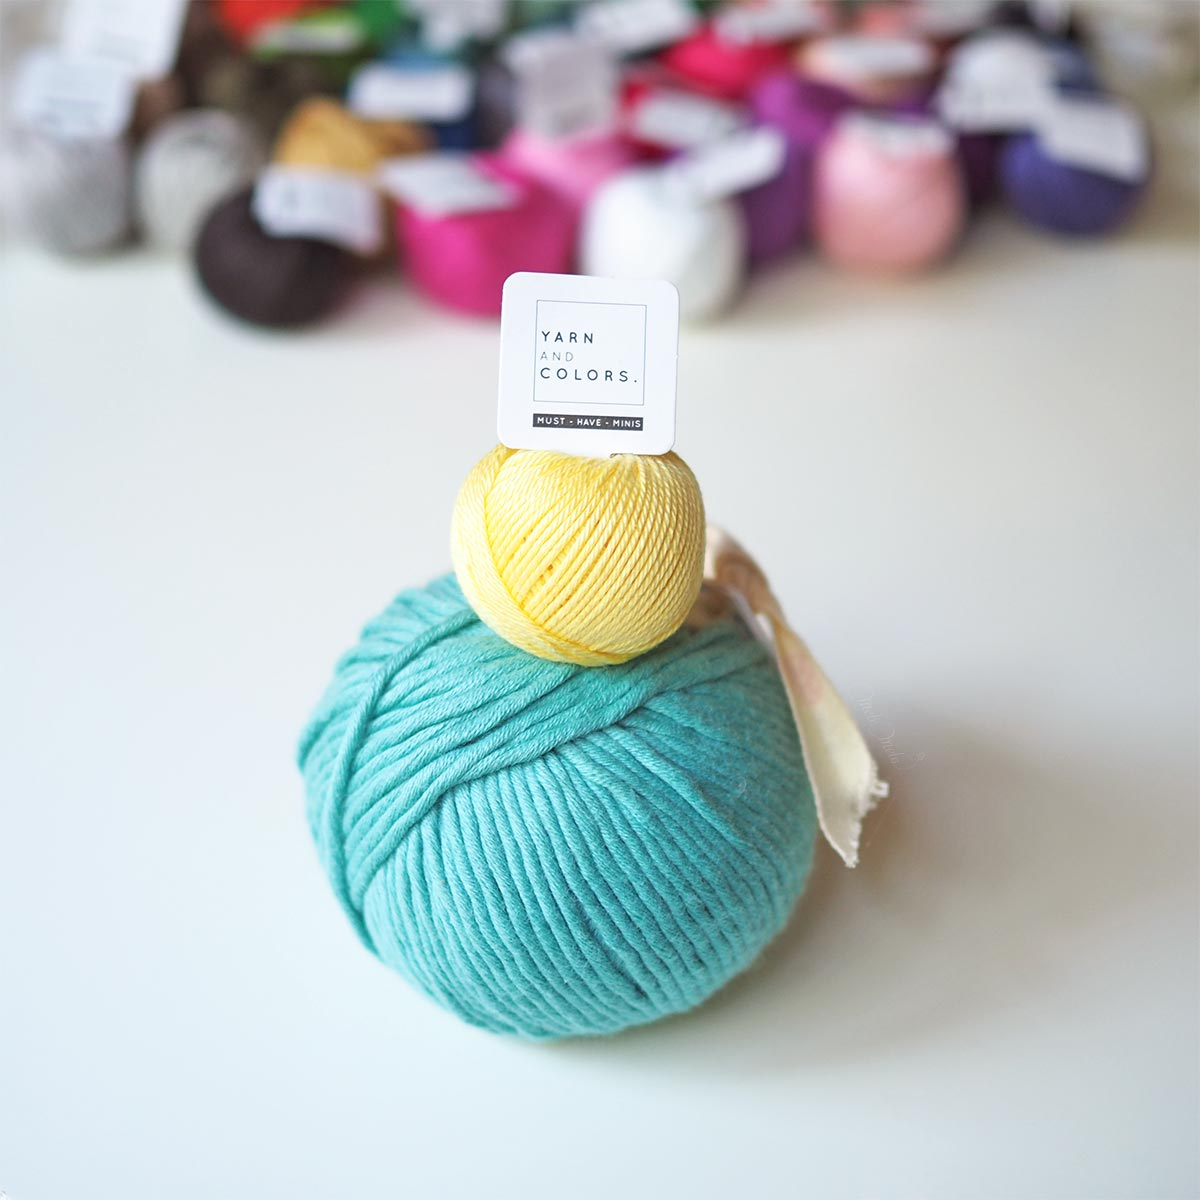 pelote-must-have-mini-yarn-and-colors